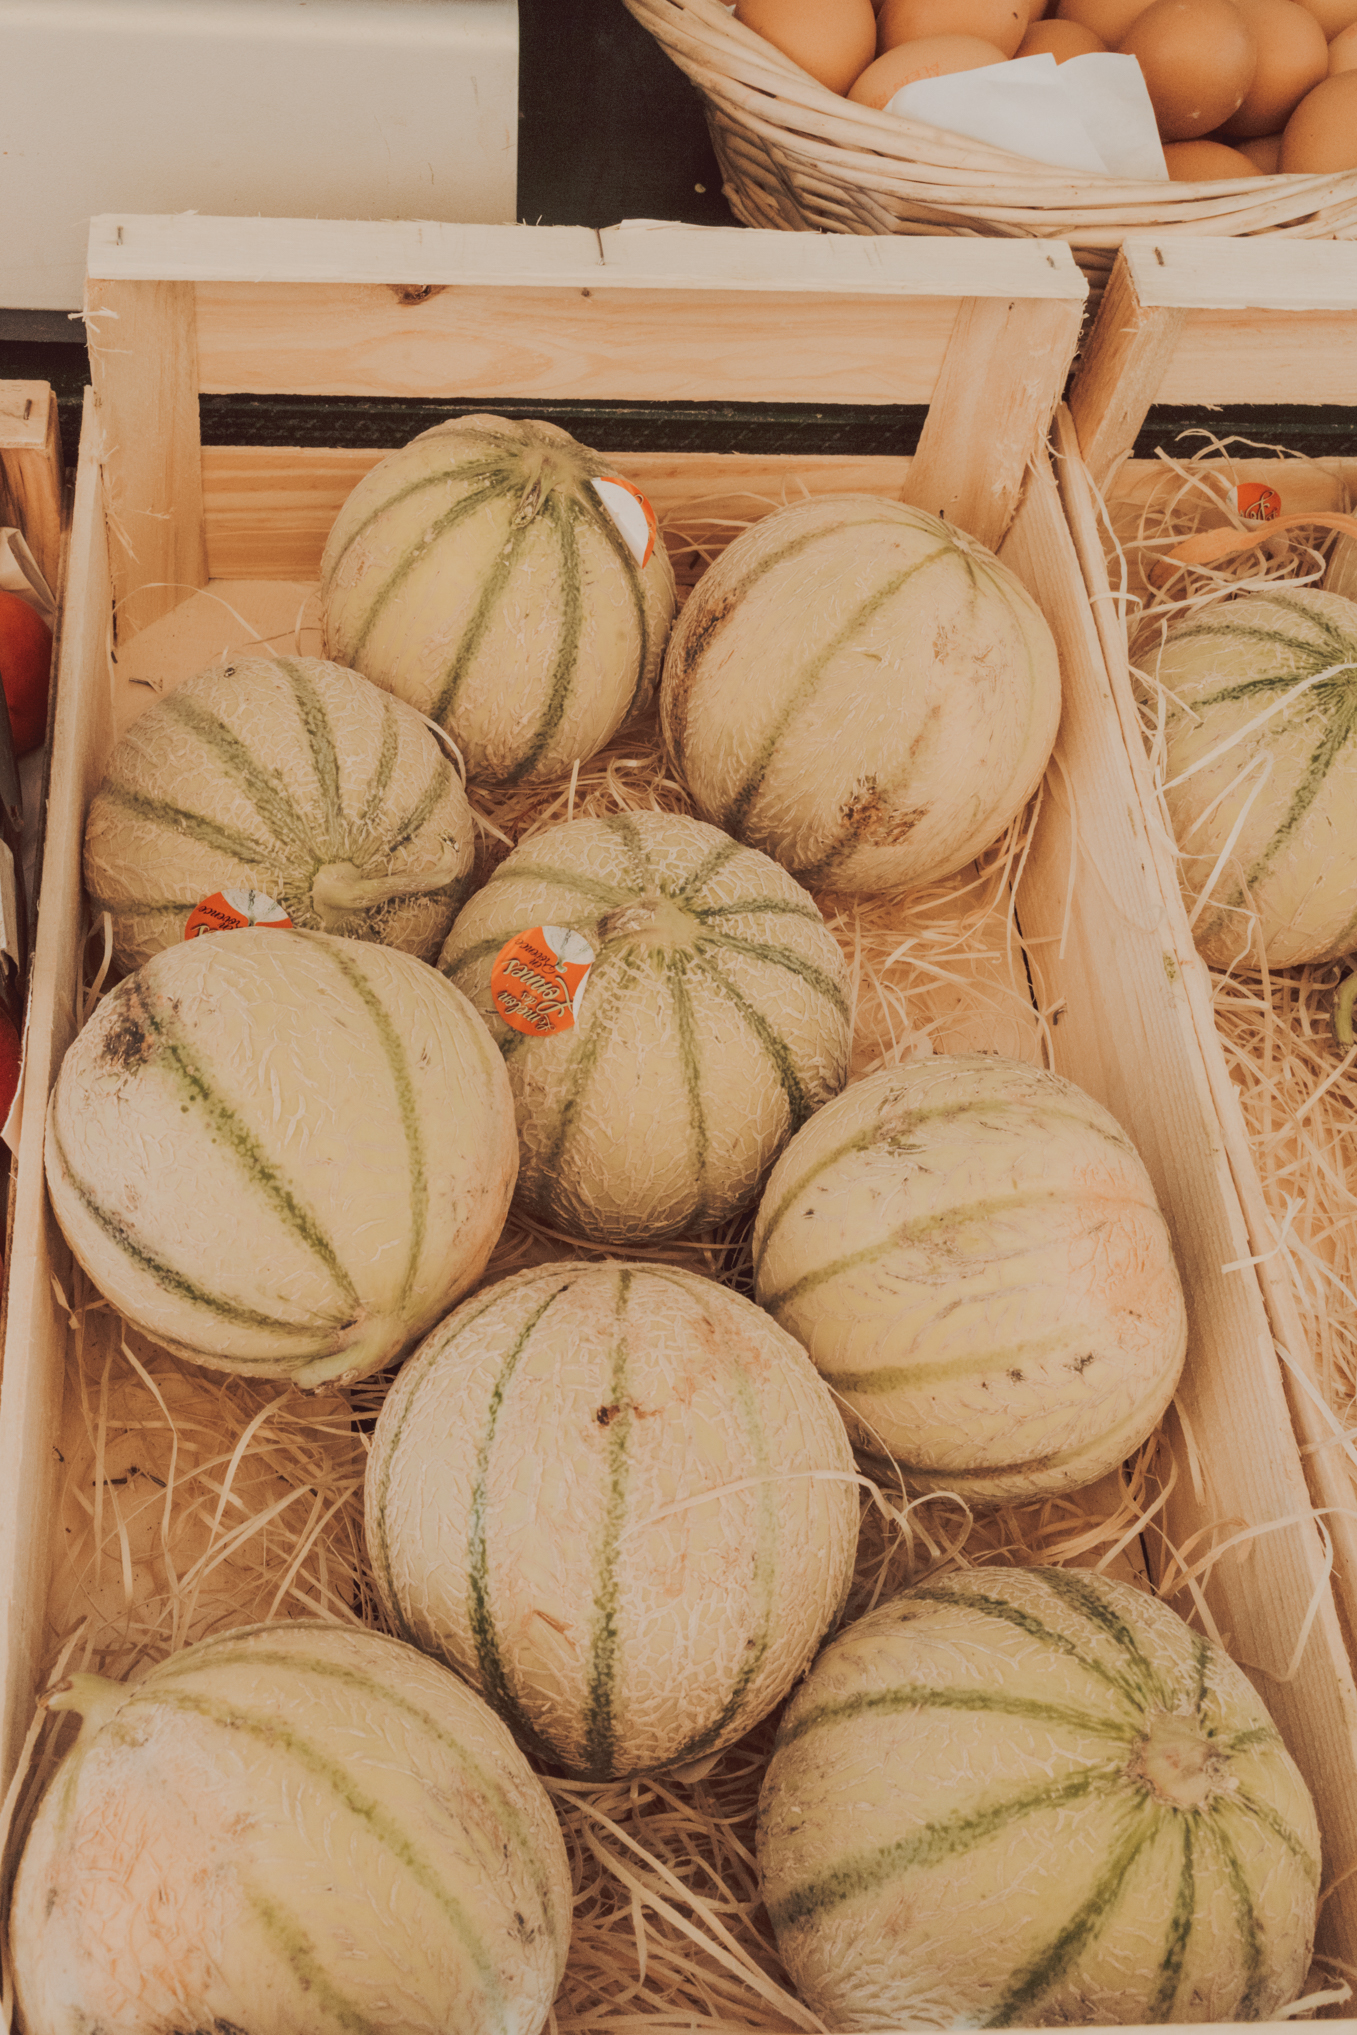 Hyeres Farmers Market Beach Giens Things to do in Hyeres South of France - French Rivera #France #Provence #FrenchRivera #CotedAzur